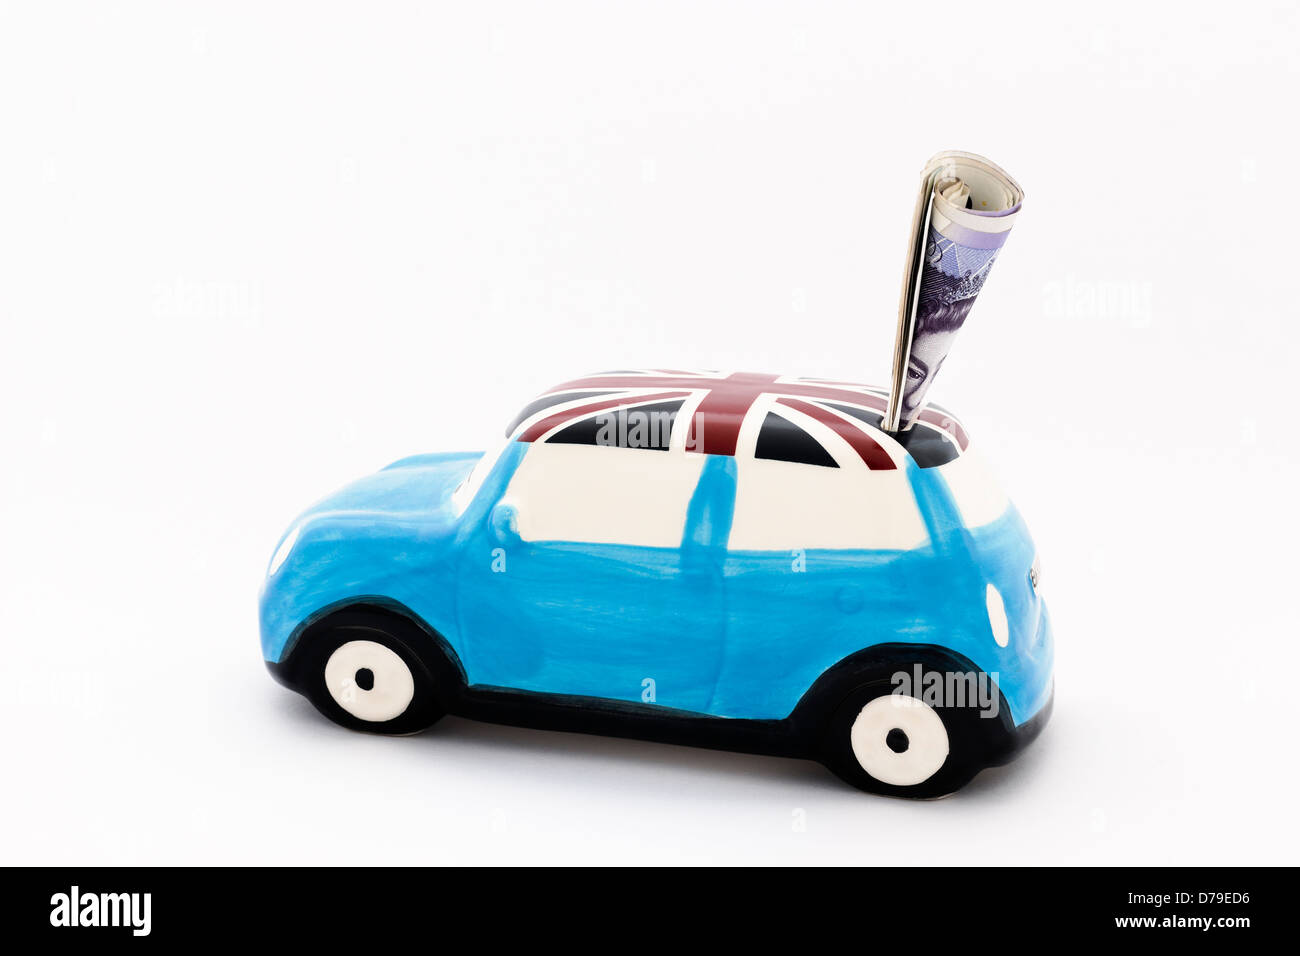 Car money box stuffed with notes - Stock Image